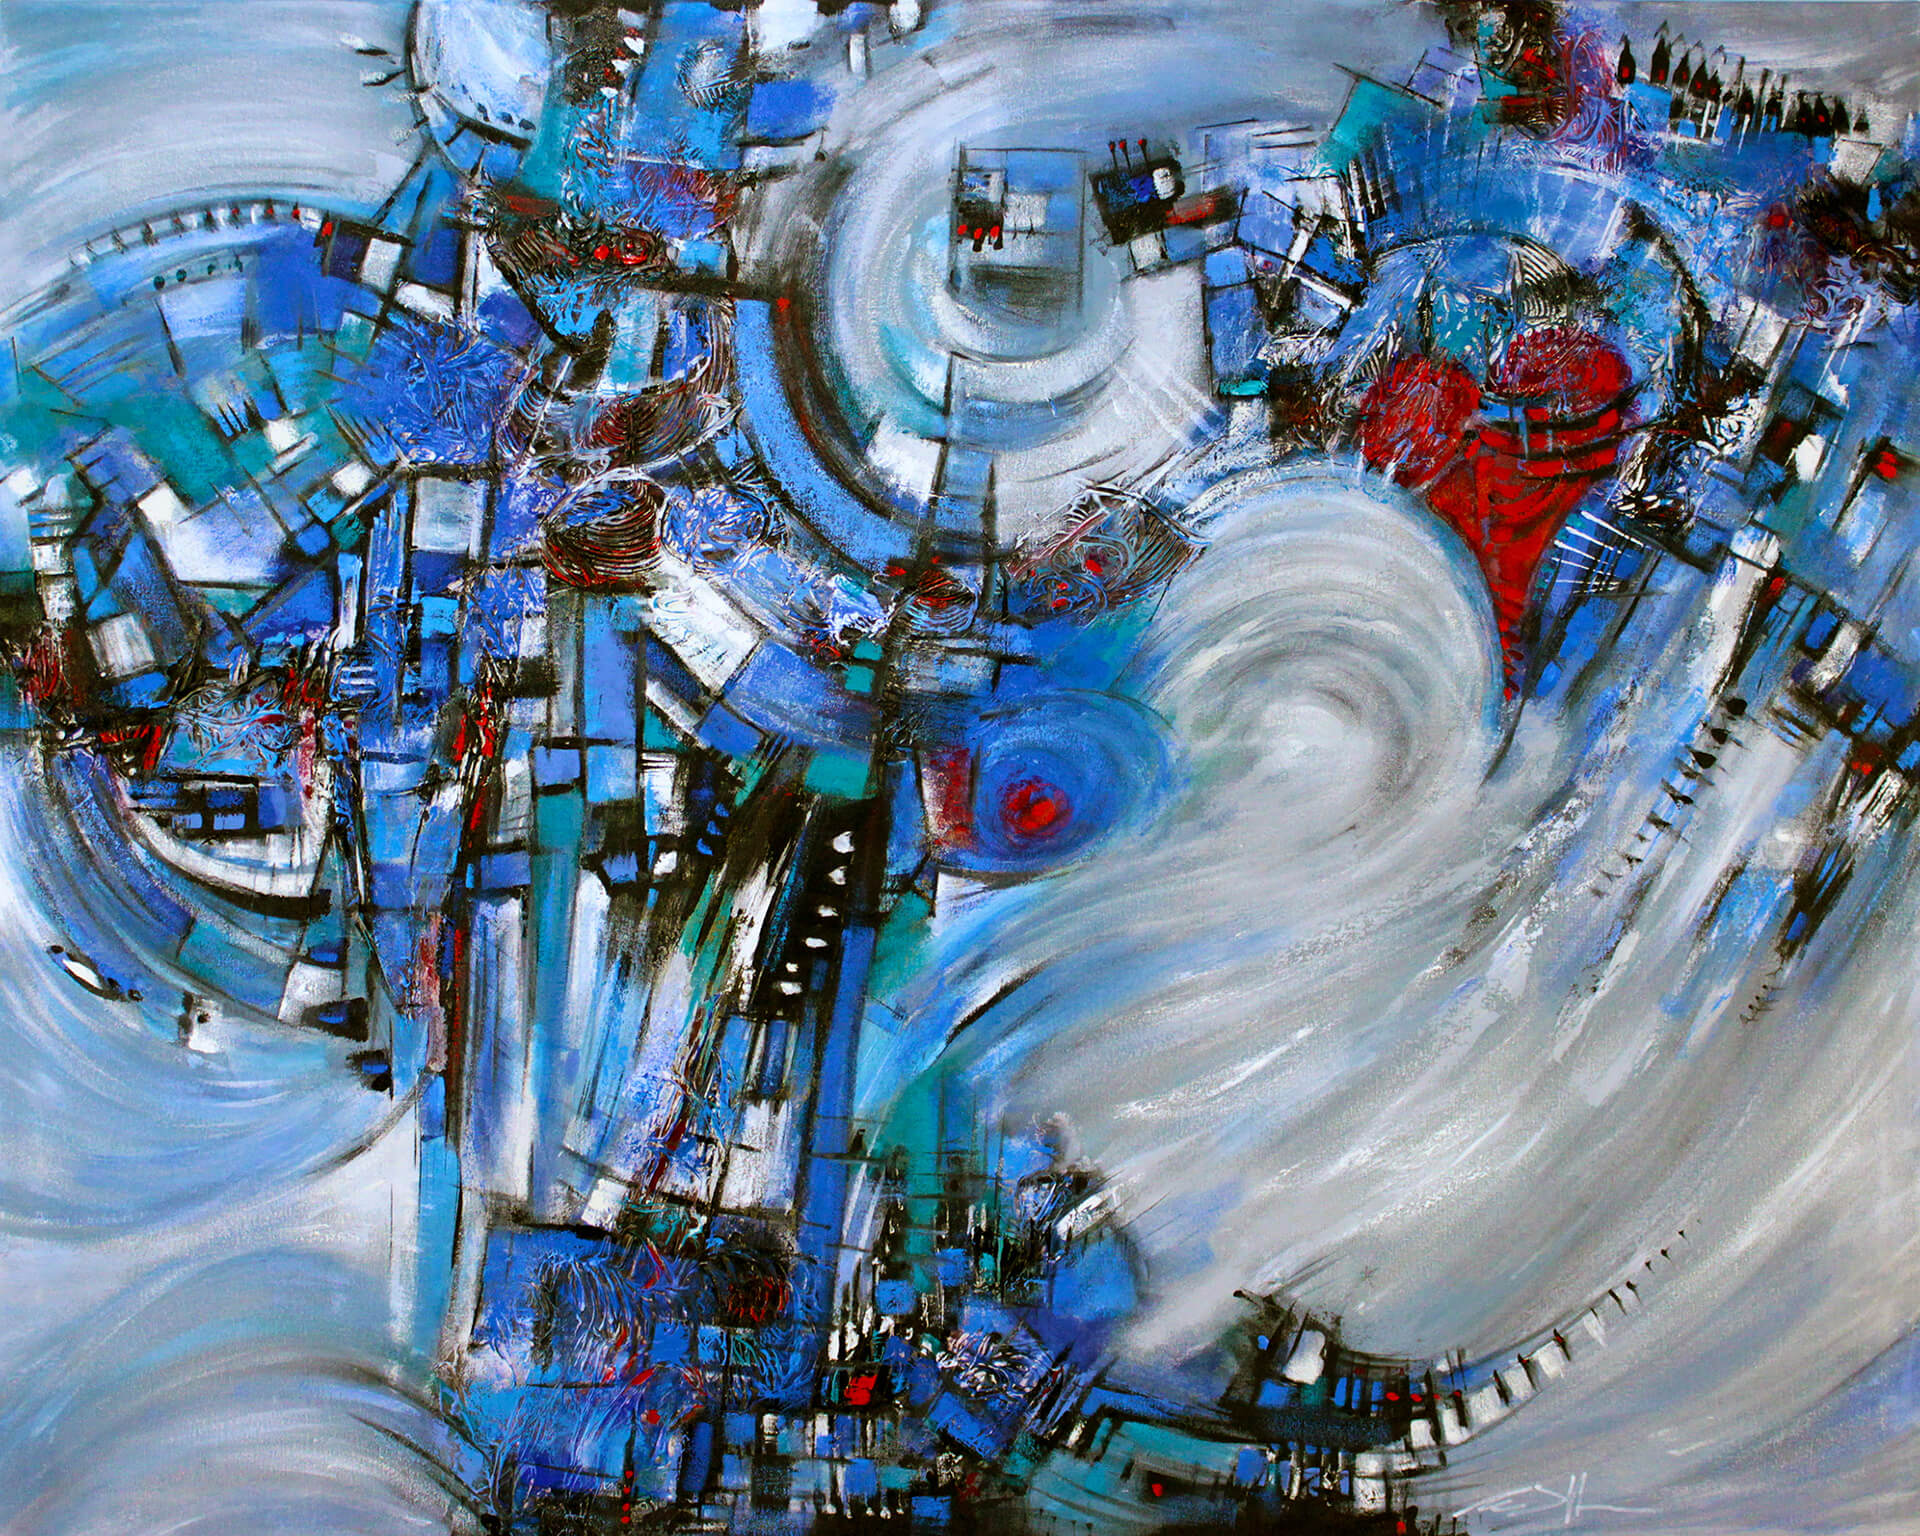 art-eric-j-hughes-artiste-peintre-canadien-tableau-symbiose-force-d-une-passion